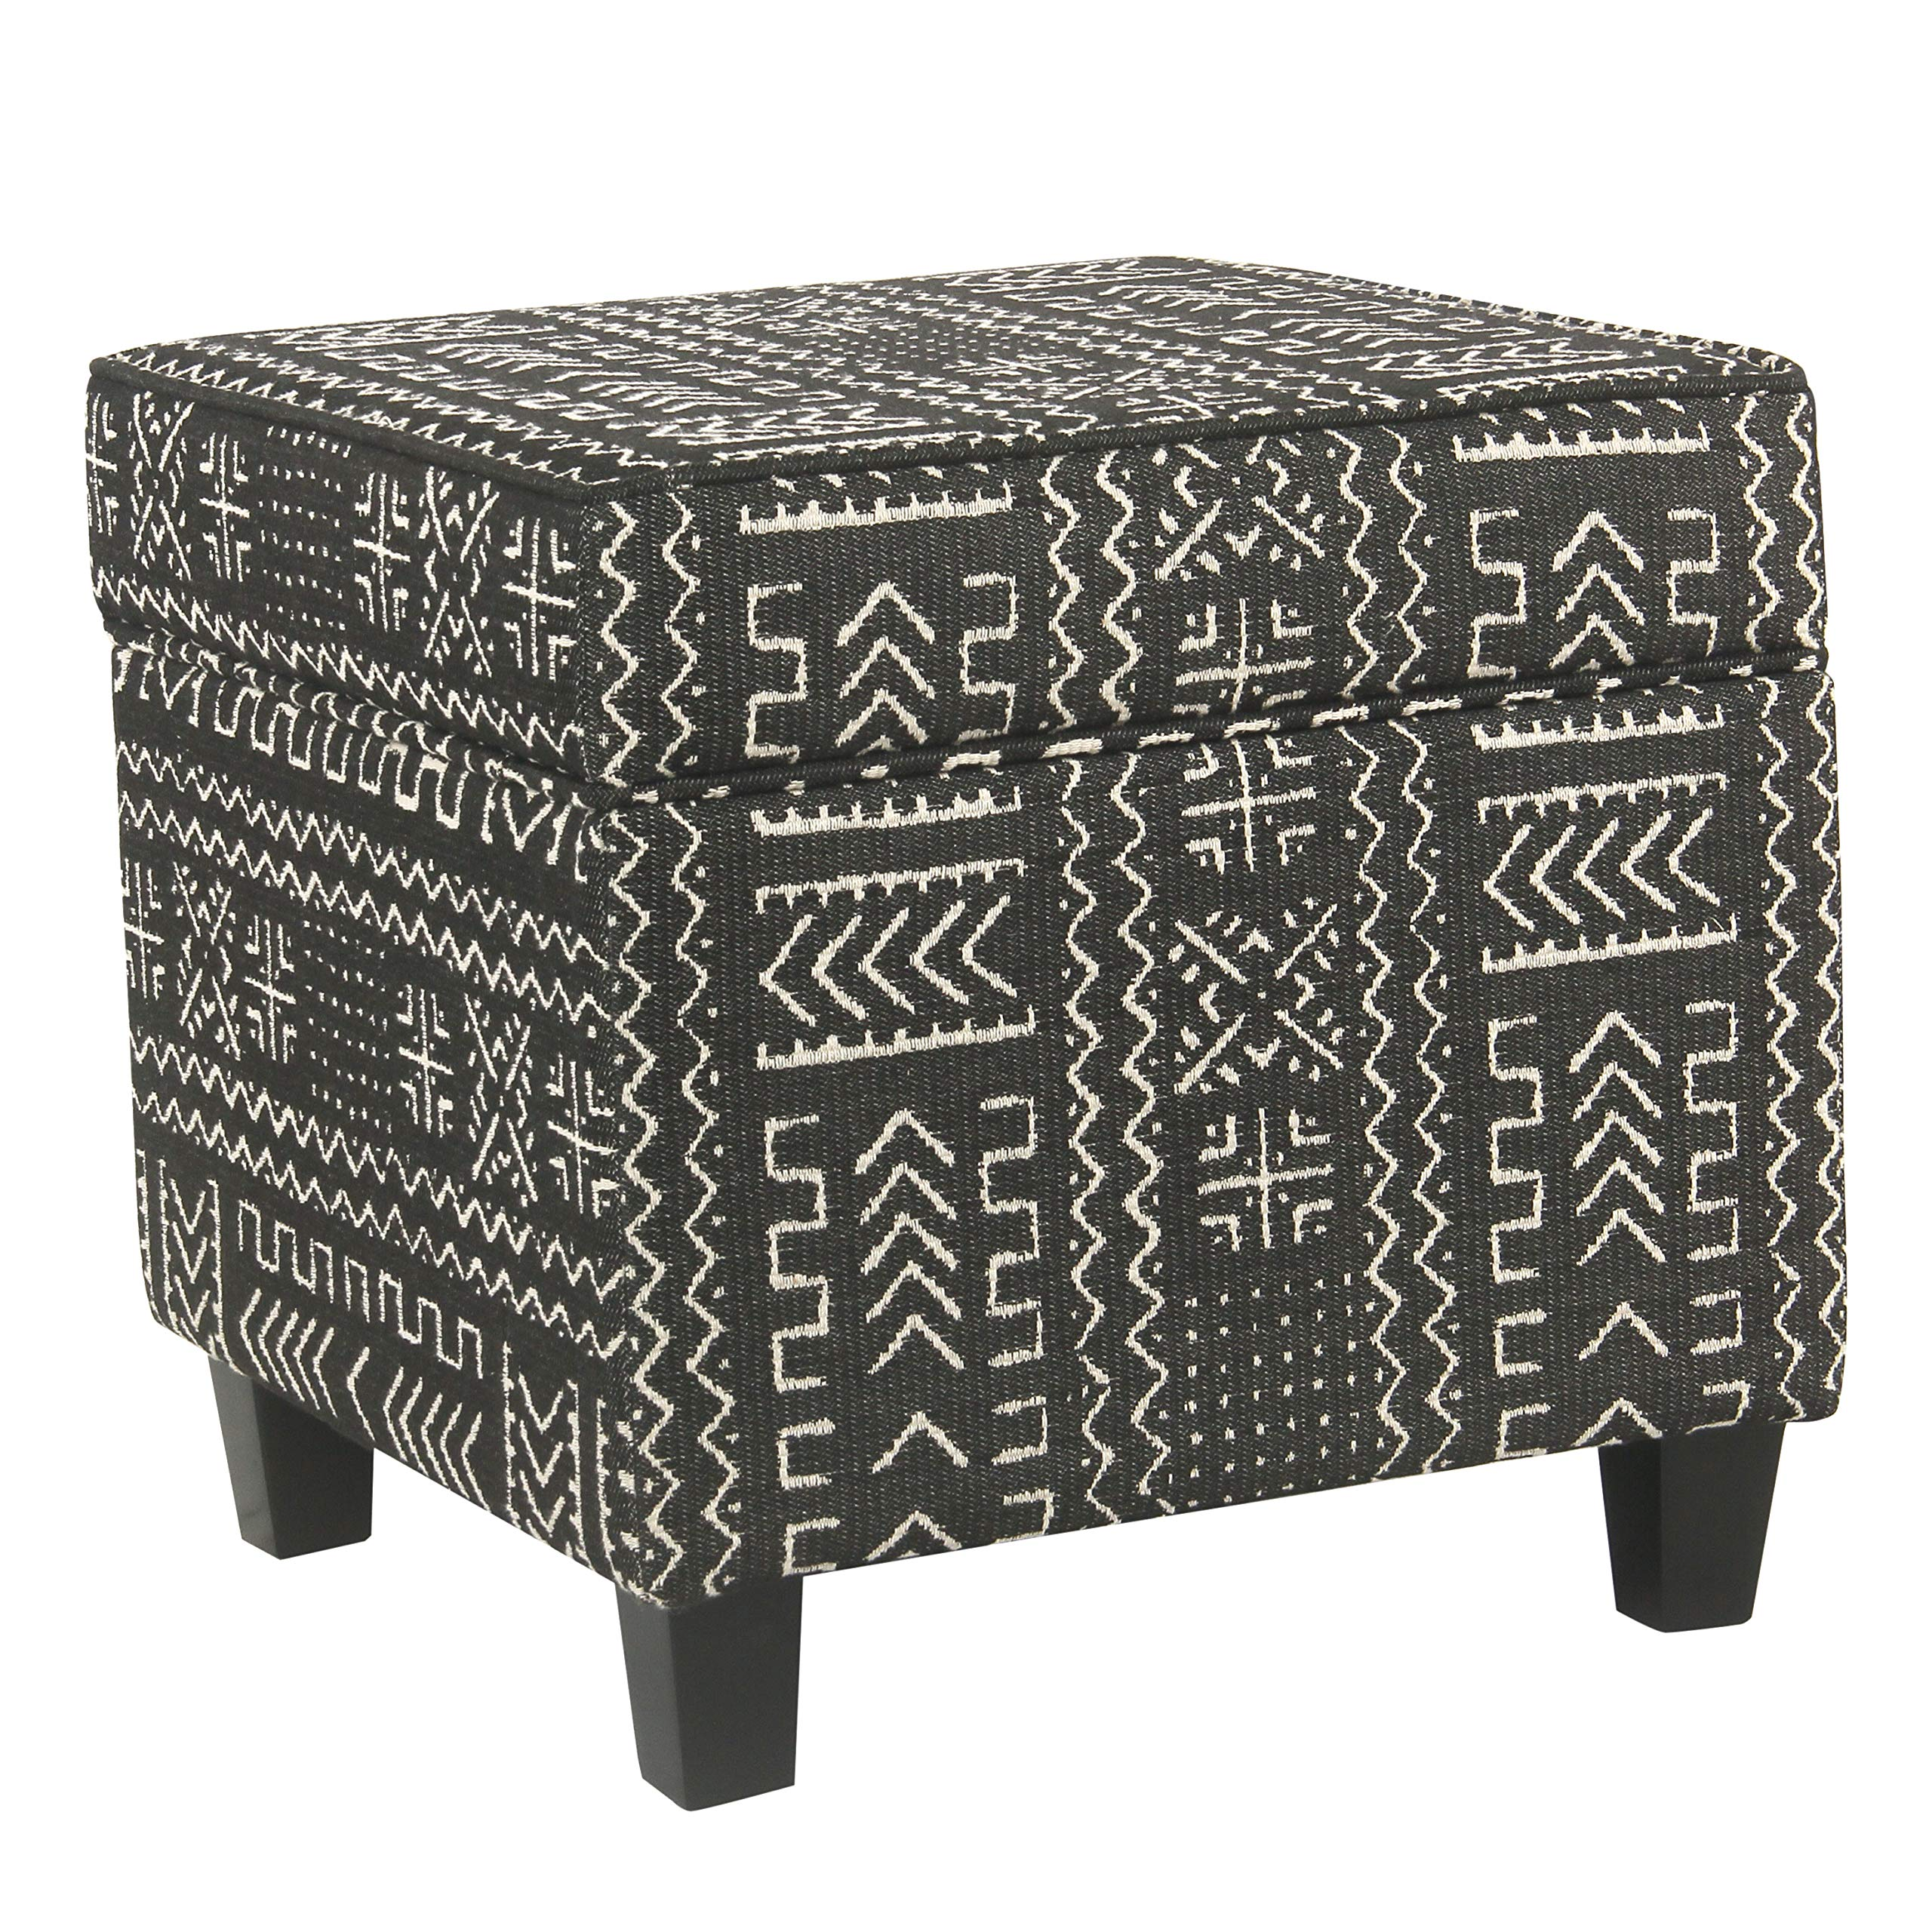 HomePop Square Storage Ottoman with Lift Off Lid, Onyx by HomePop